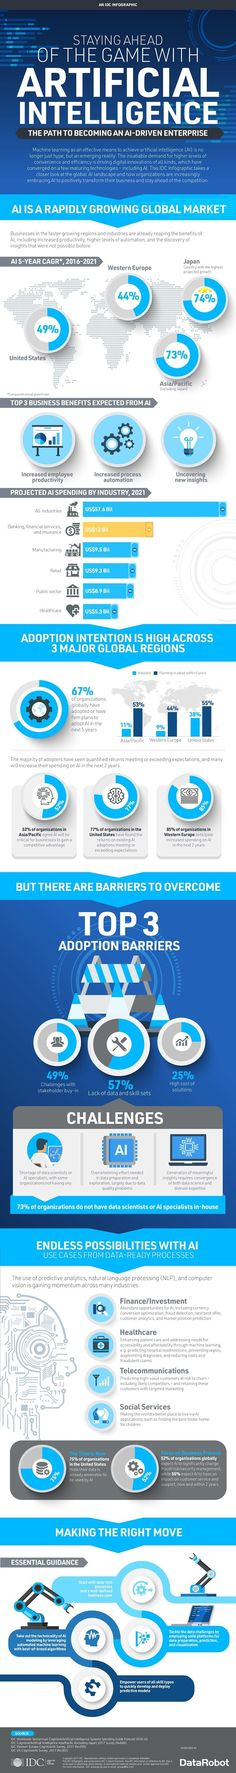 Staying Ahead of the Game with Artificial Intelligence - #infographic #artificialintelligence